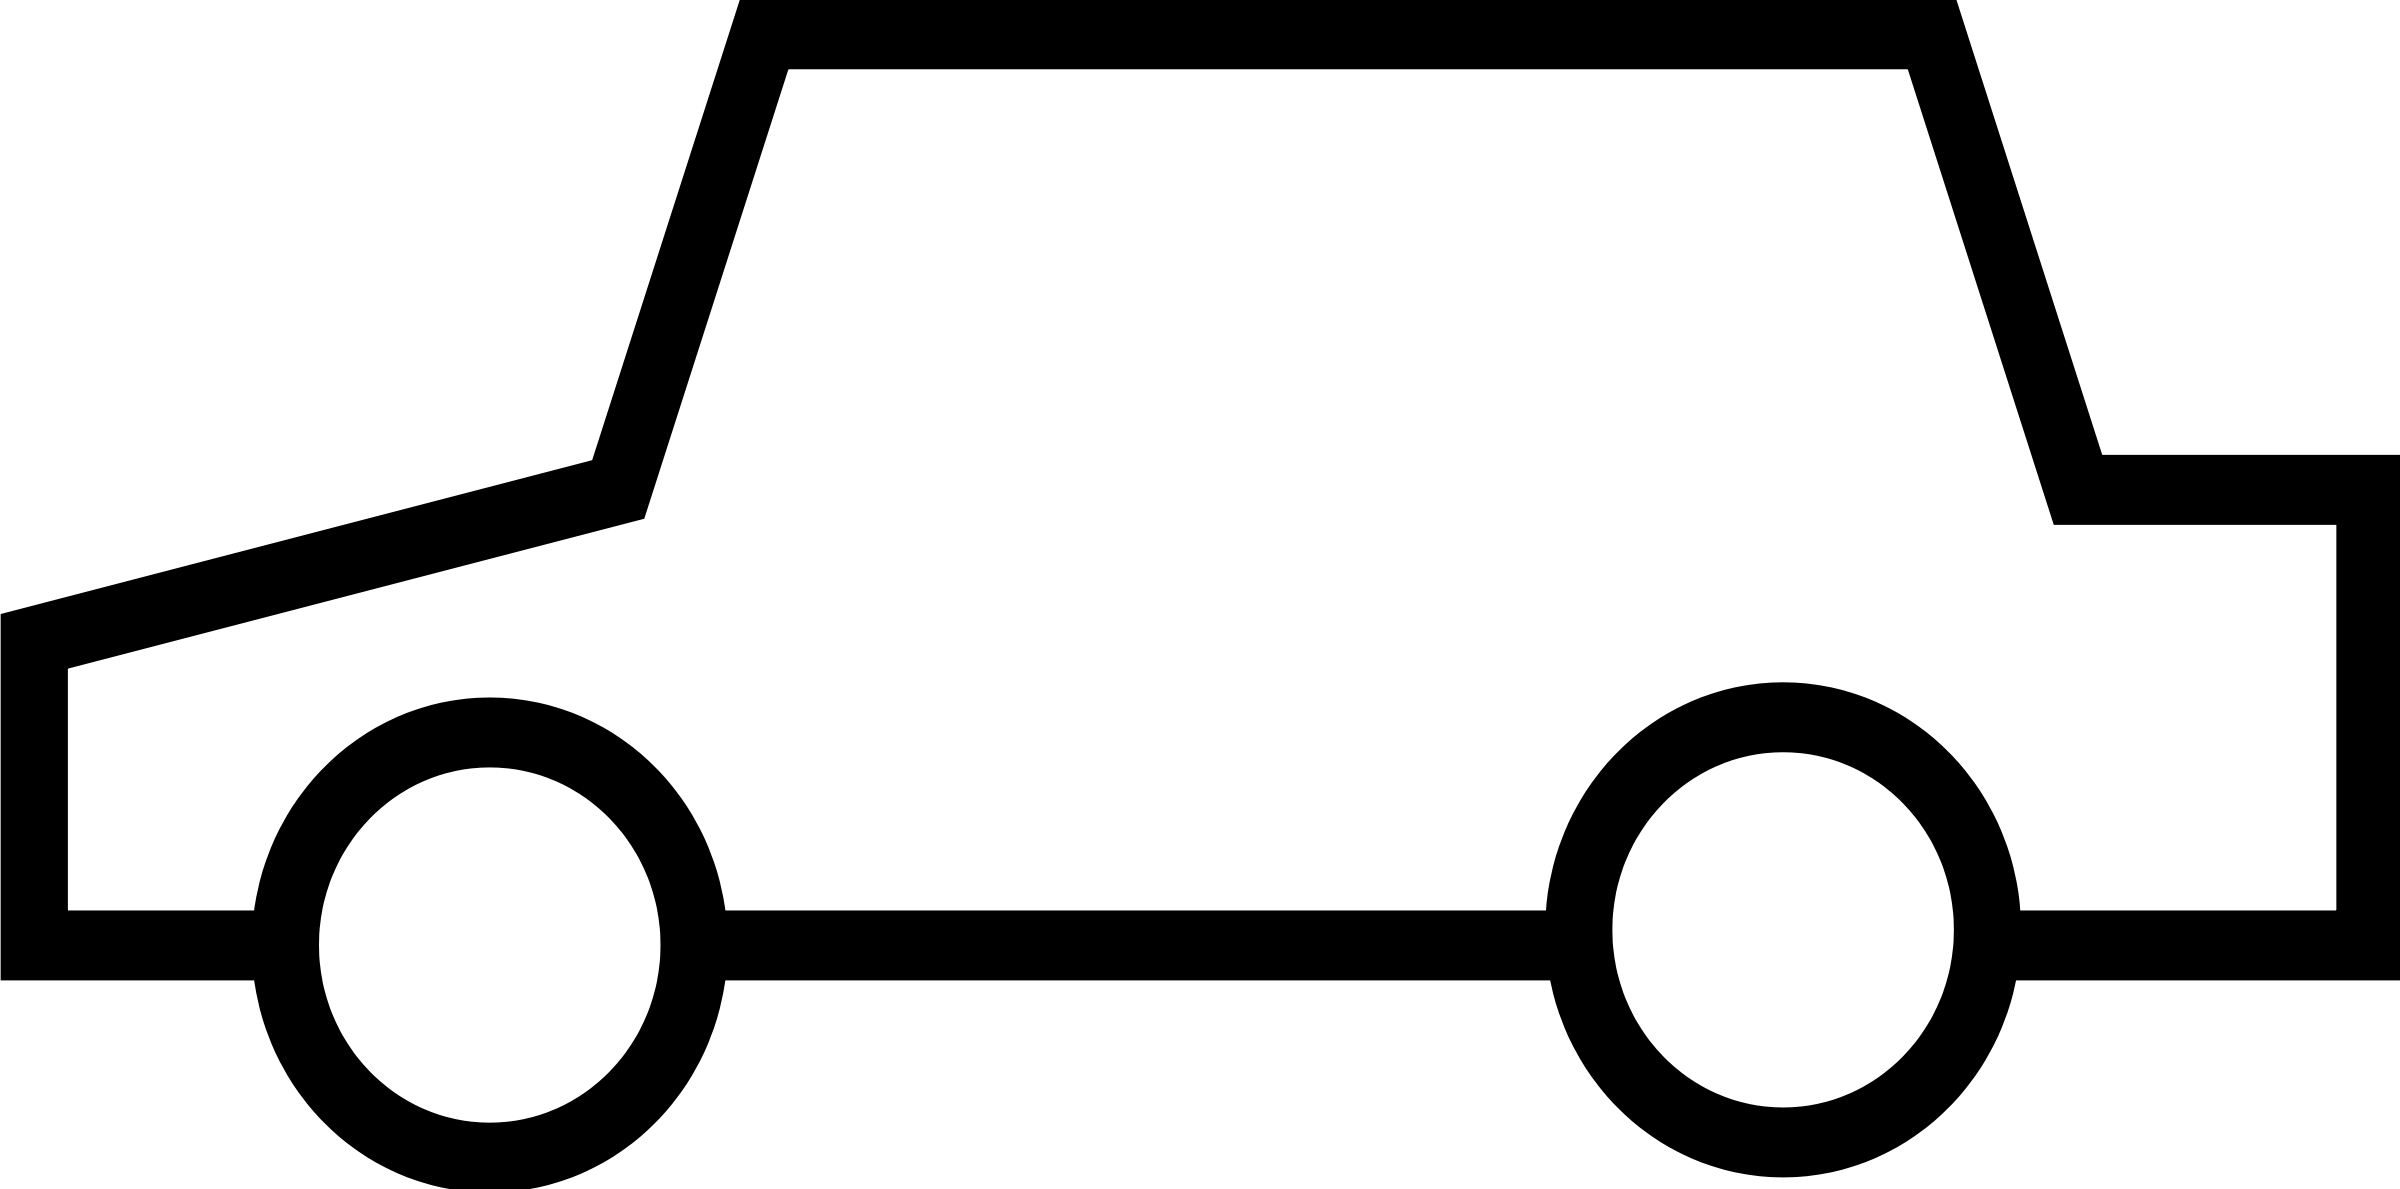 Simple wooden car clipart black and white picture transparent download Toy Car Clipart Black And White | Free download best Toy Car ... picture transparent download